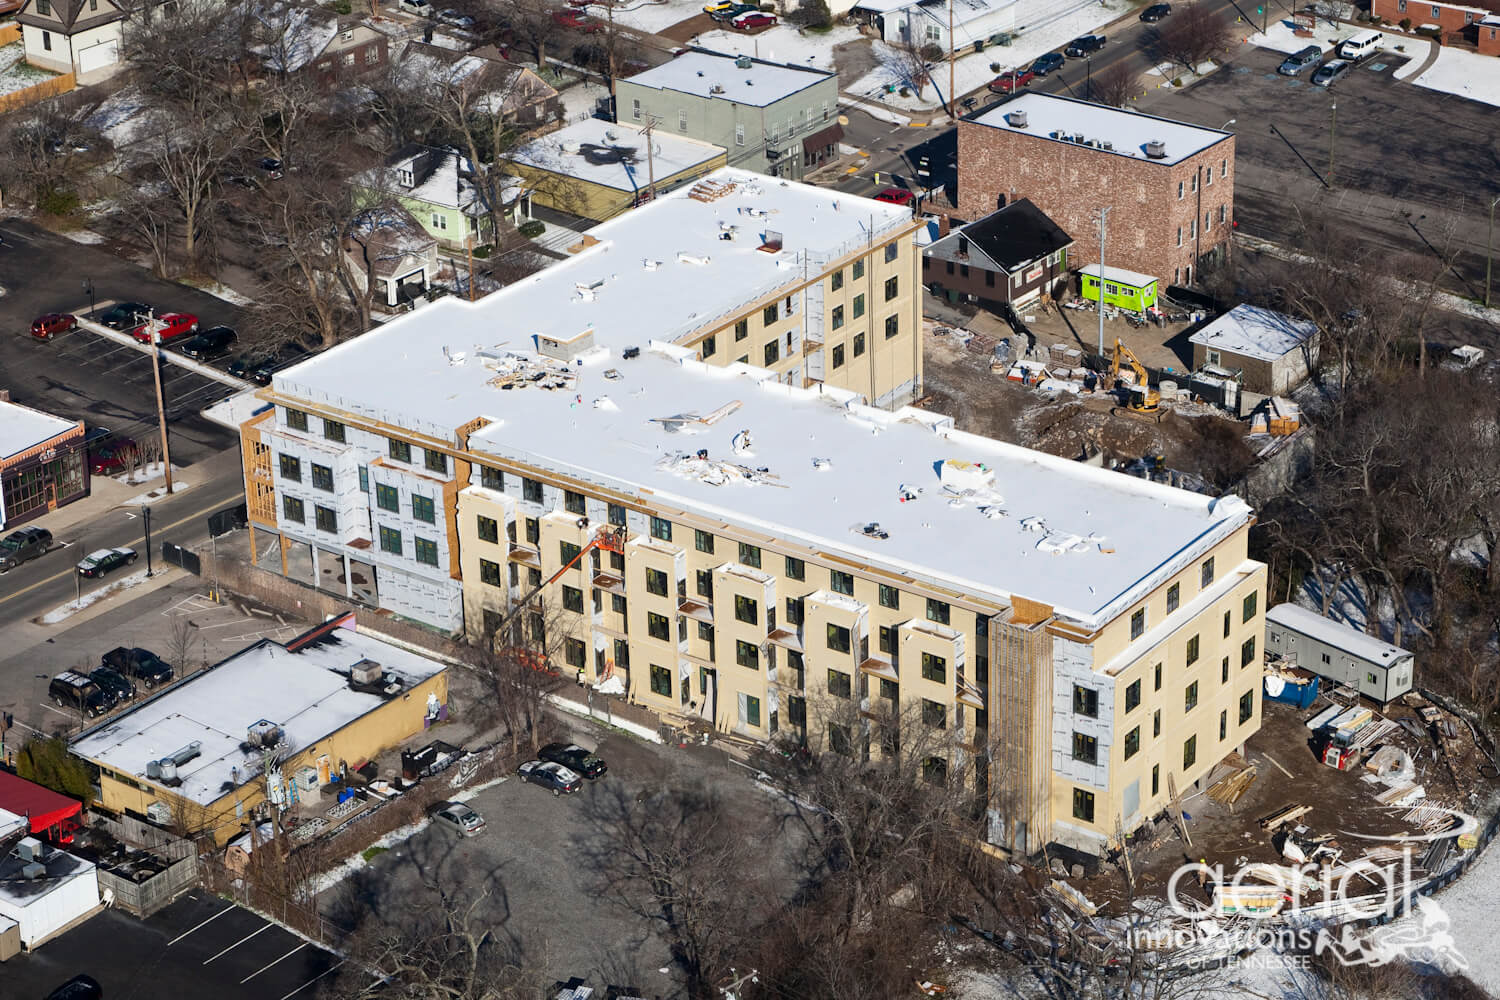 12thSouth020113_121